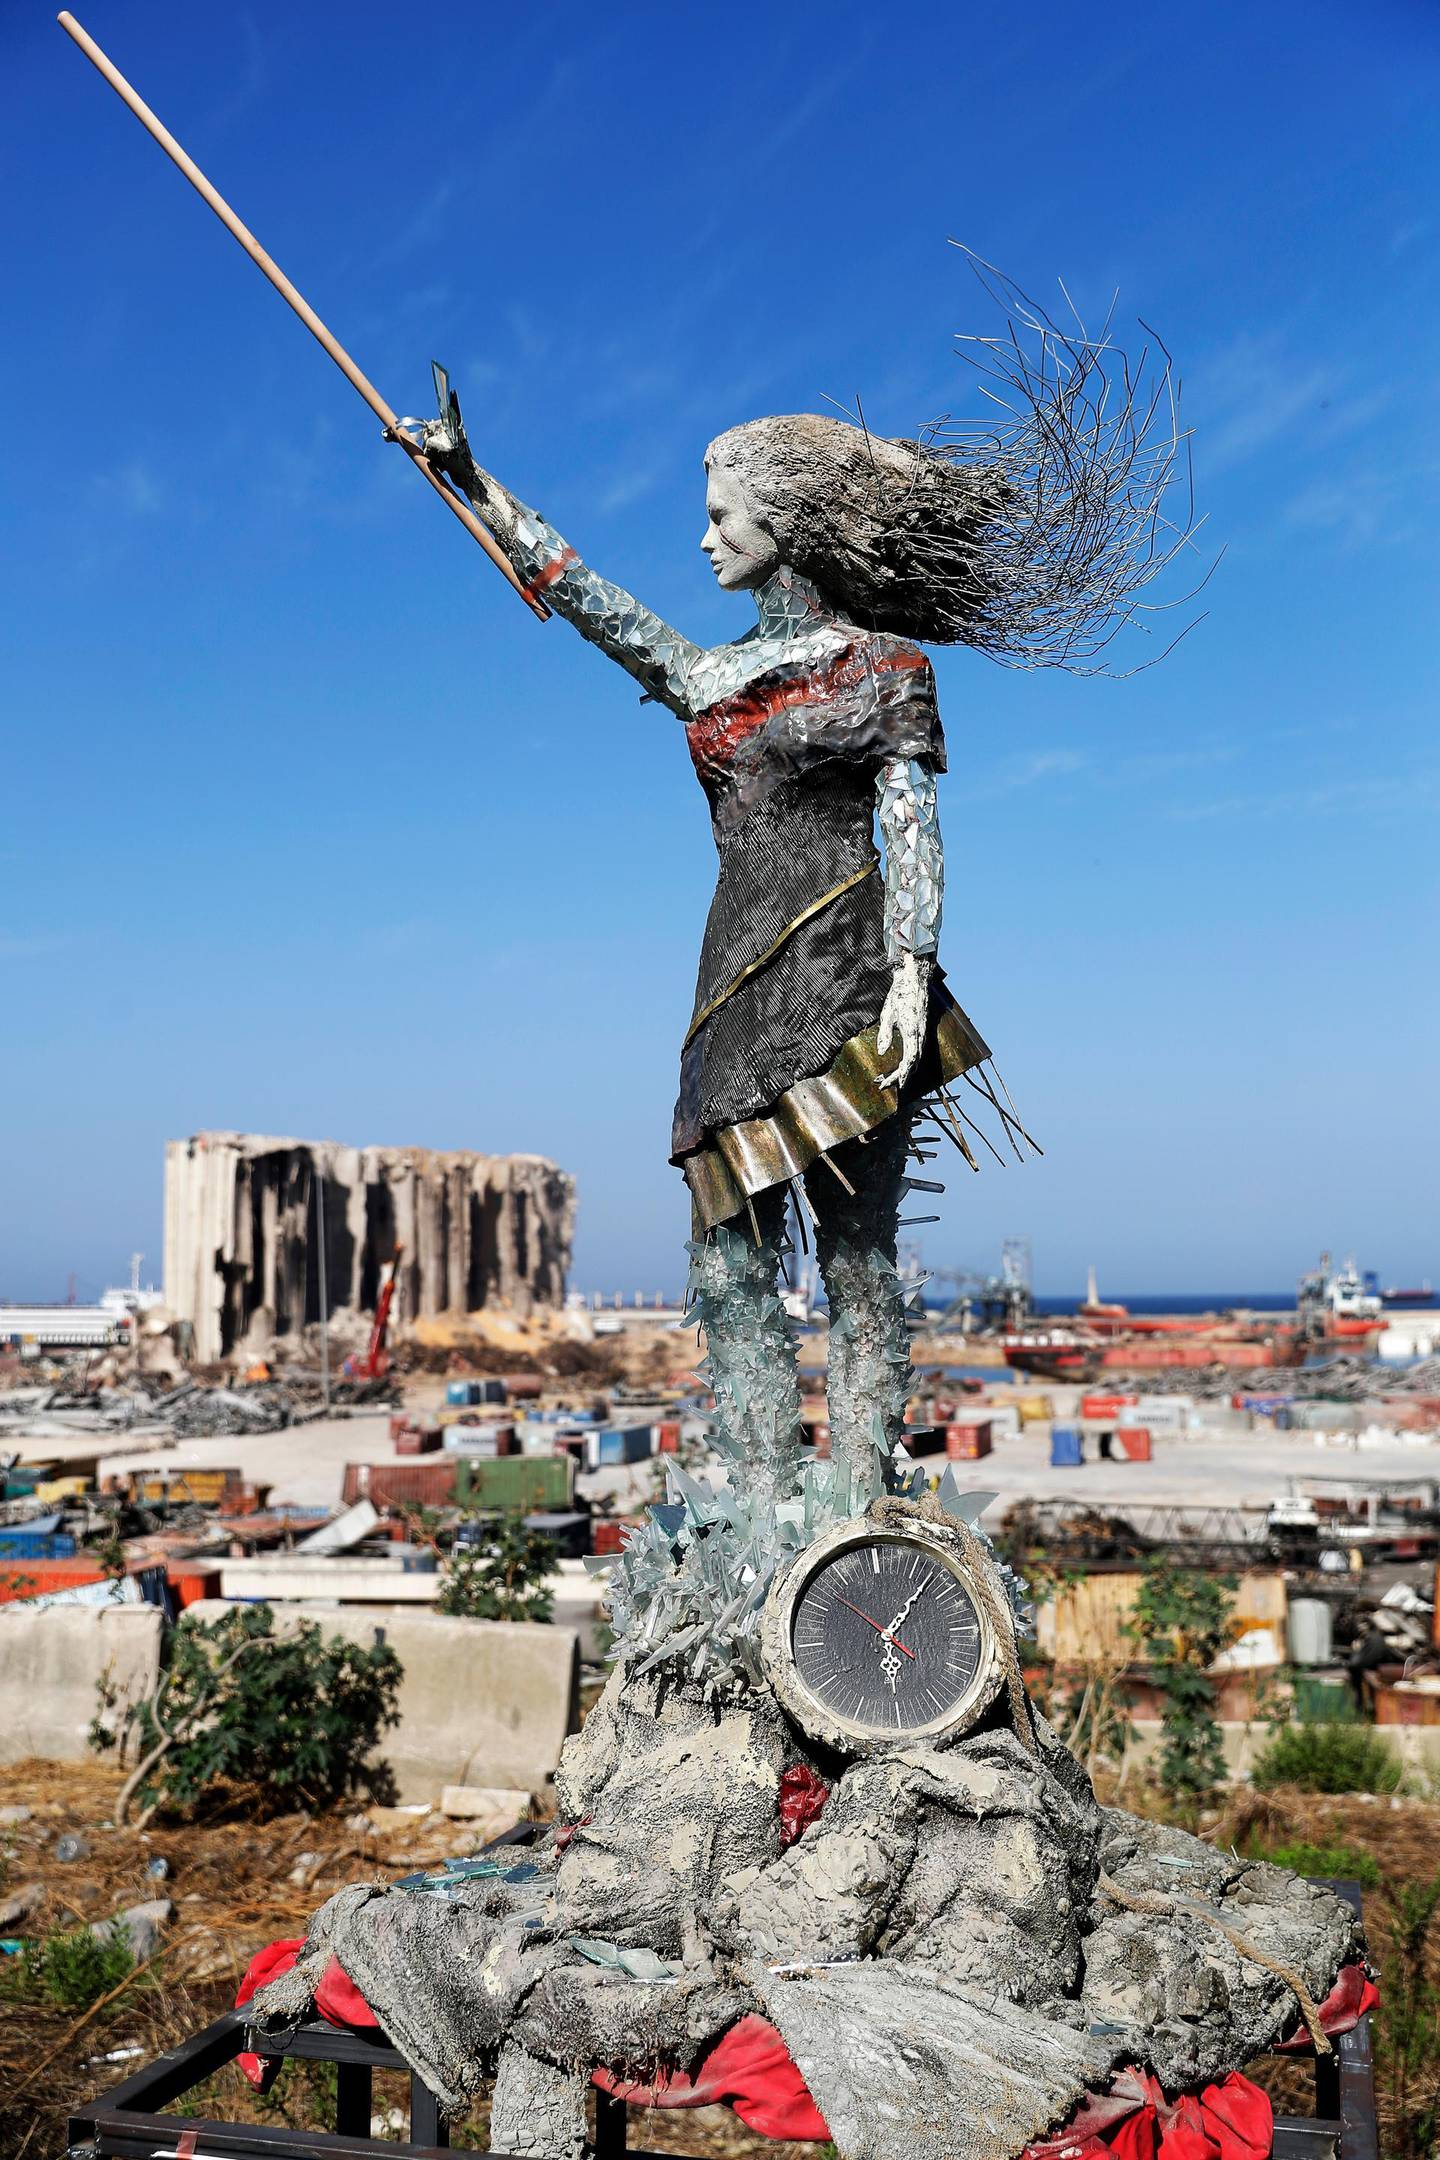 A statue of a woman by Lebanese artist Hayat Nazer, made out of leftover glass, rubble, and a broken clock marking the time (6:08 PM) of the mega explosion at the port of Beirut is placed opposite to the site of the blast in the Lebanese capital's harbour, to mark the one year anniversary of the beginning of the anti-government protest movement across the country, on October 20, 2020. - Hundreds marched in Beirut on the weekend to mark the first anniversary of a non-sectarian protest movement that has rocked the political elite but has yet to achieve its goal of sweeping reform. A whirlwind of hope and despair has gripped the country in the year since protests began, as an economic crisis and a devastating port explosion two months ago pushed Lebanon deeper into decay. (Photo by JOSEPH EID / AFP) / RESTRICTED TO EDITORIAL USE - MANDATORY MENTION OF THE ARTIST UPON PUBLICATION - TO ILLUSTRATE THE EVENT AS SPECIFIED IN THE CAPTION